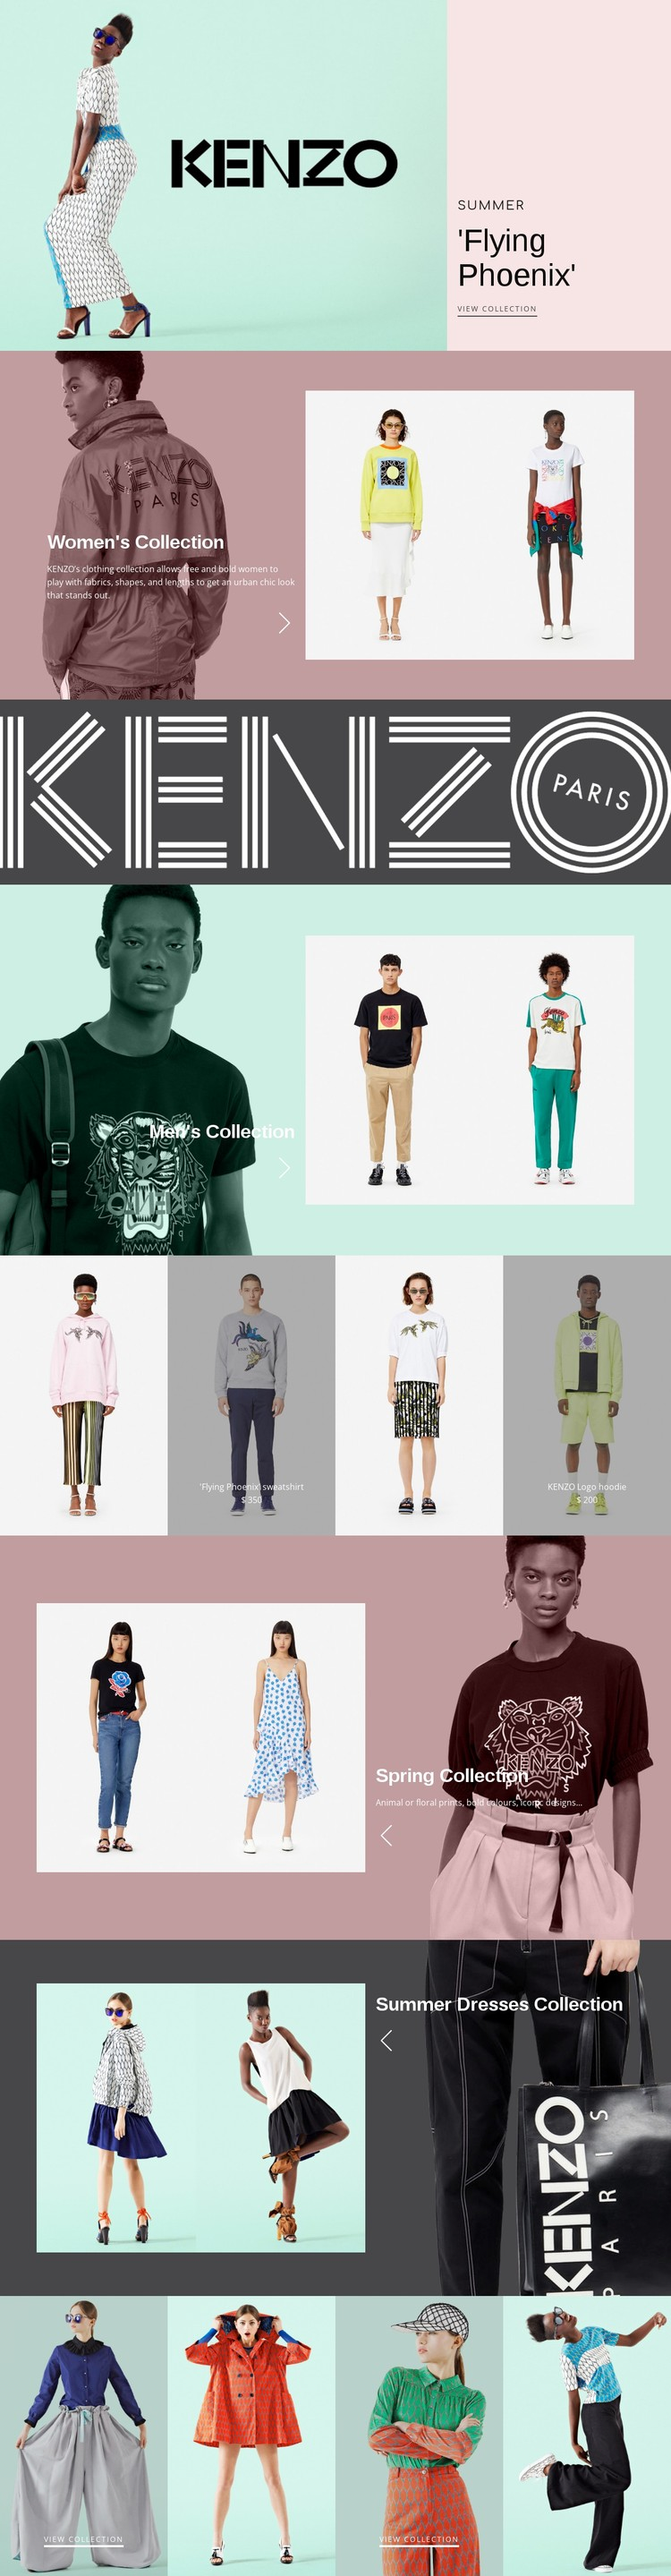 Atelier of modern fashion Static Site Generator